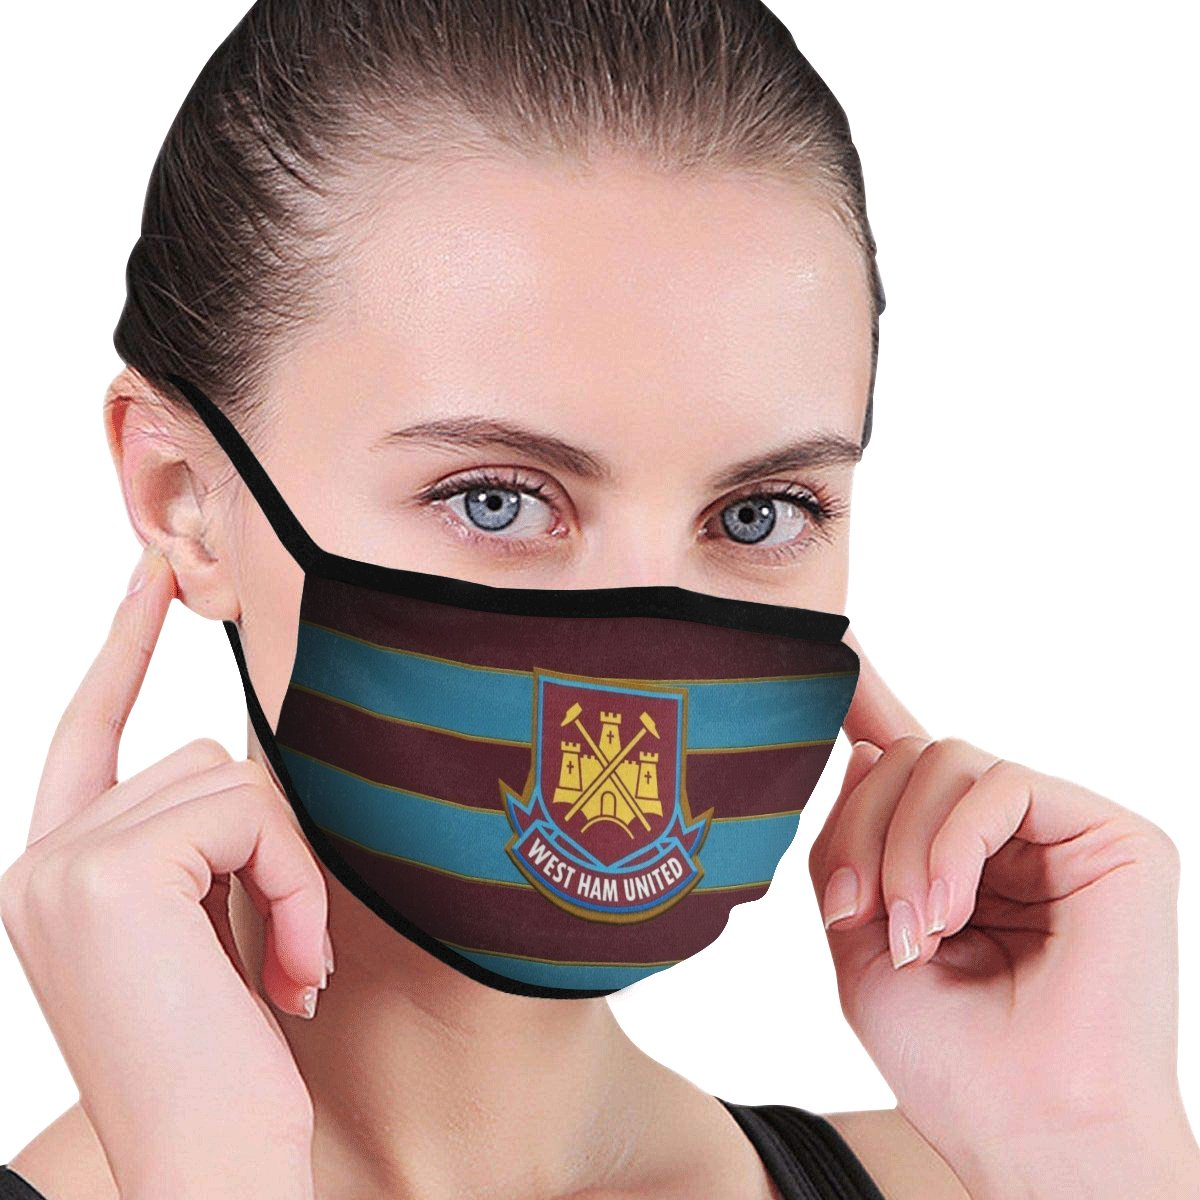 Custom Printed Masks Double-Sided (Dye-Sublimated)